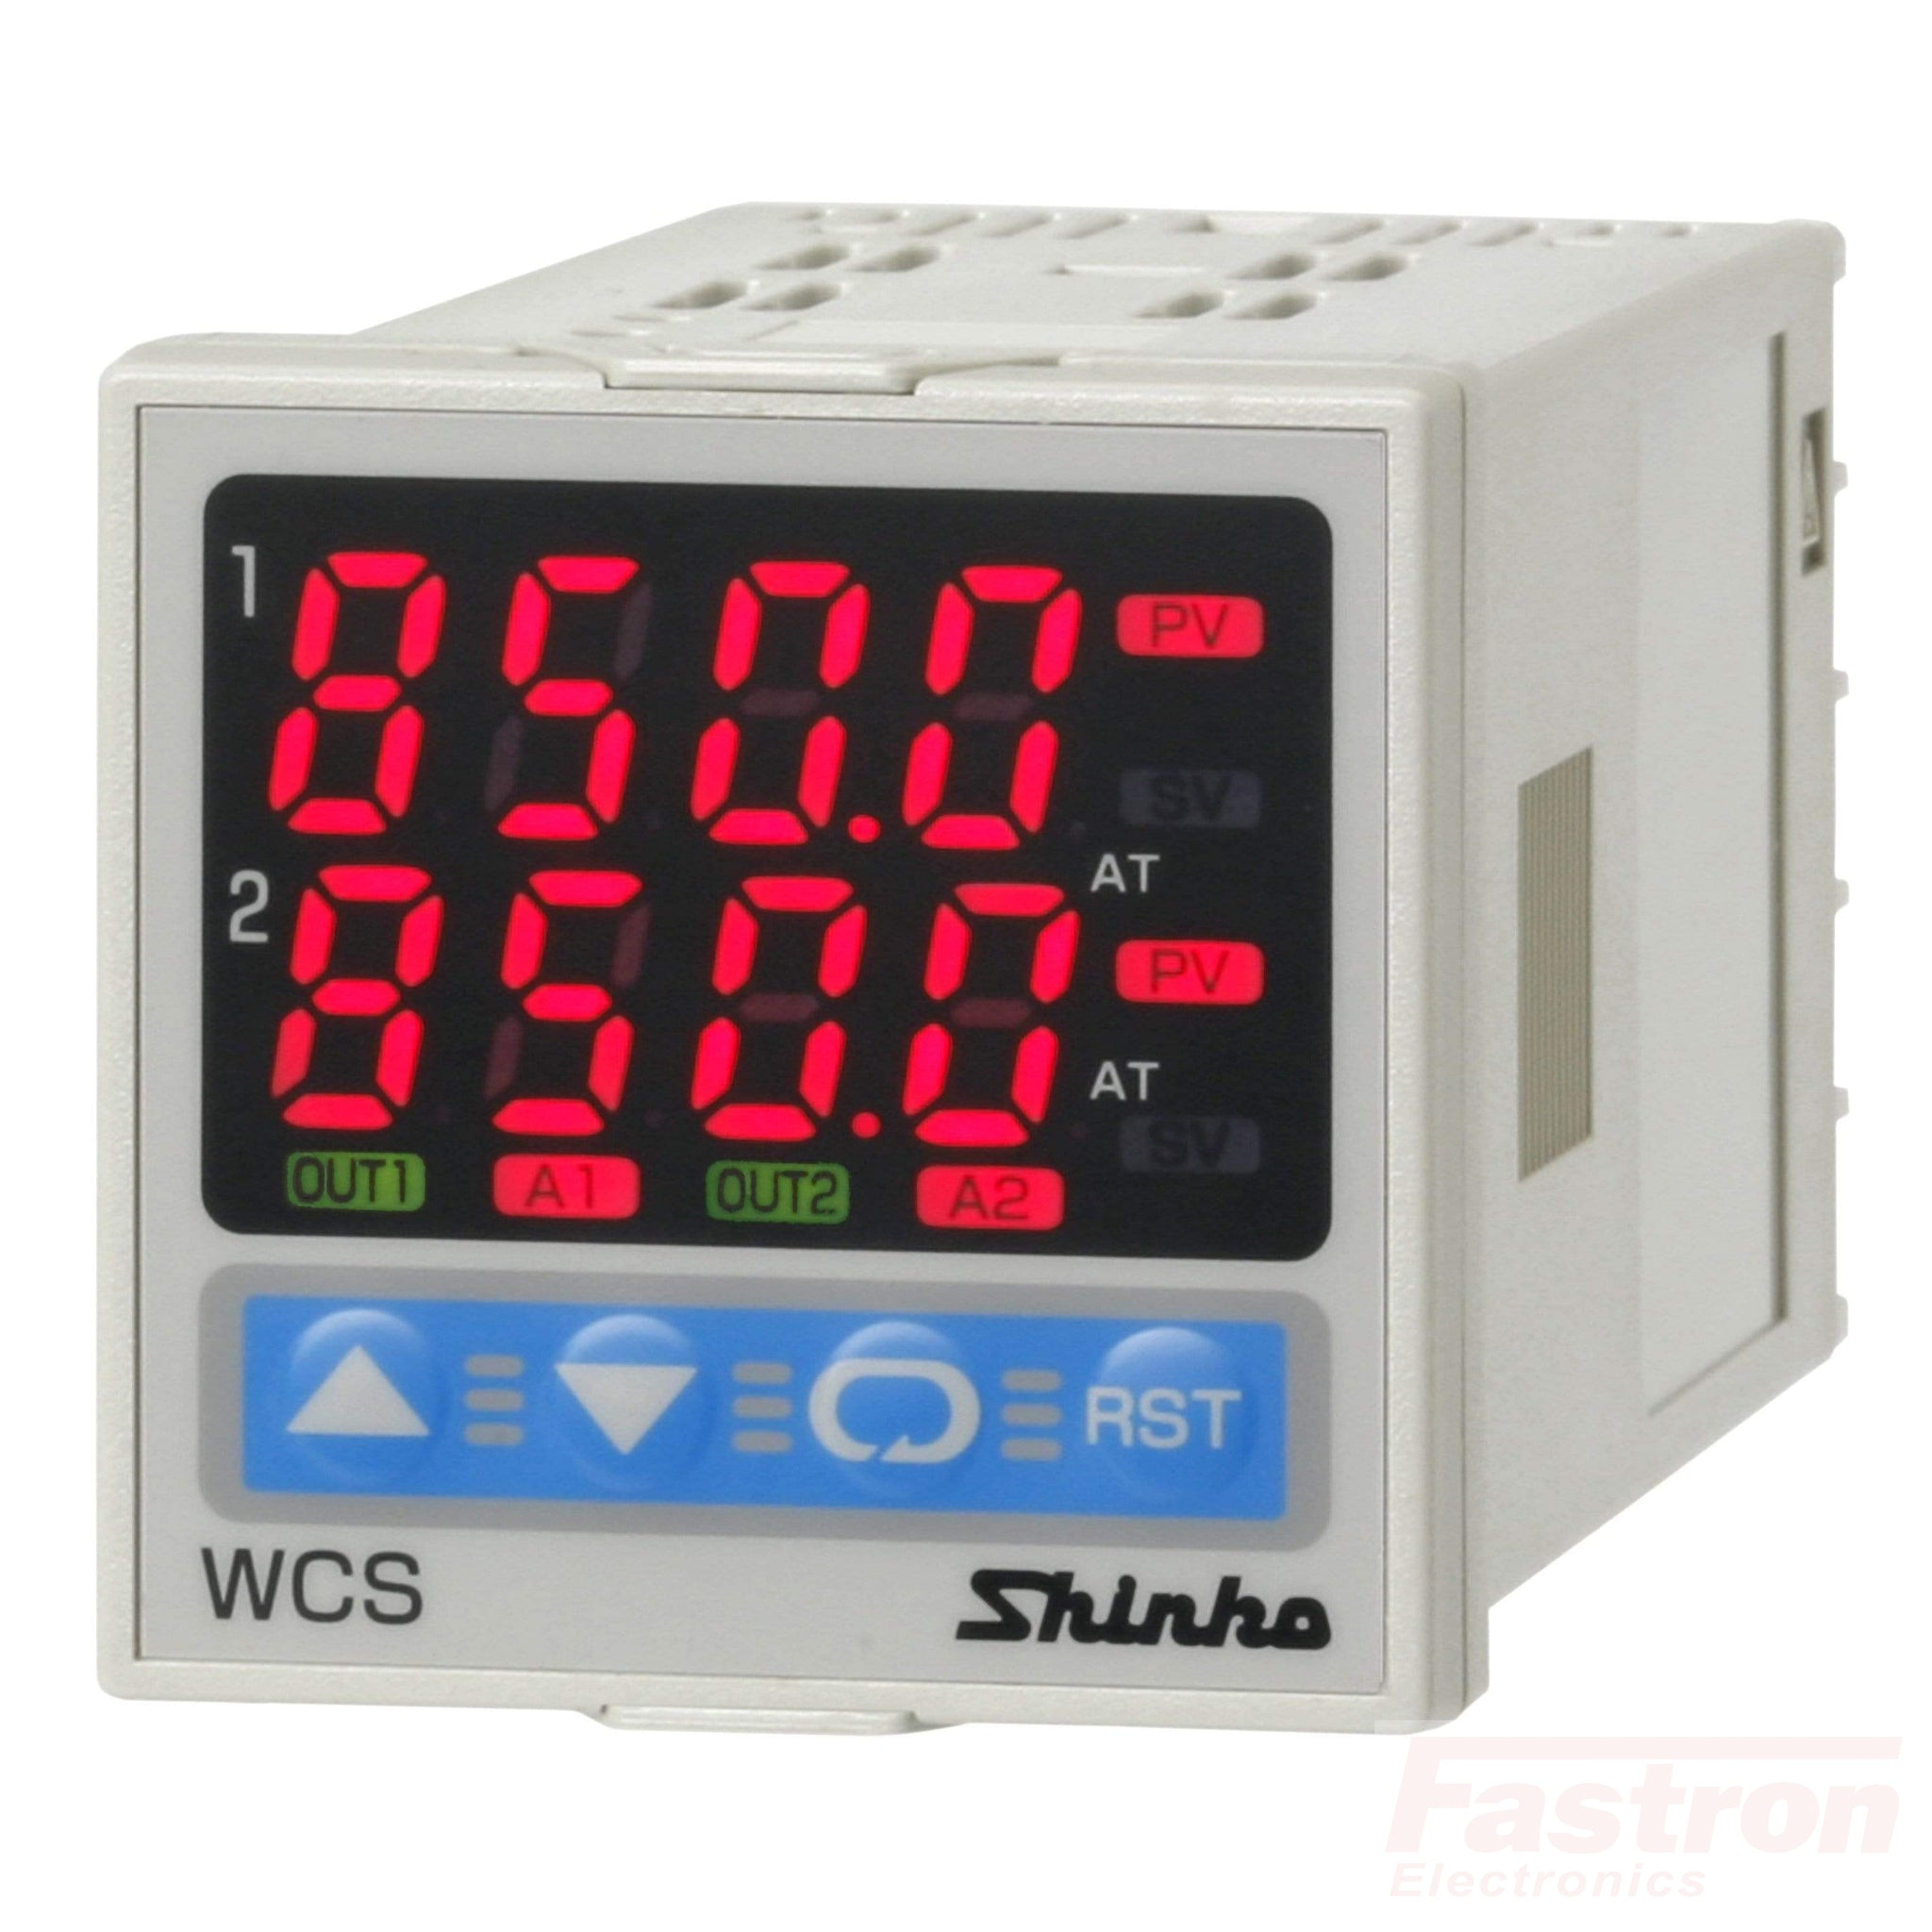 WCS13ARR/MM Dual Temperature Controller, 100-240VAC,Relay out,Relay out